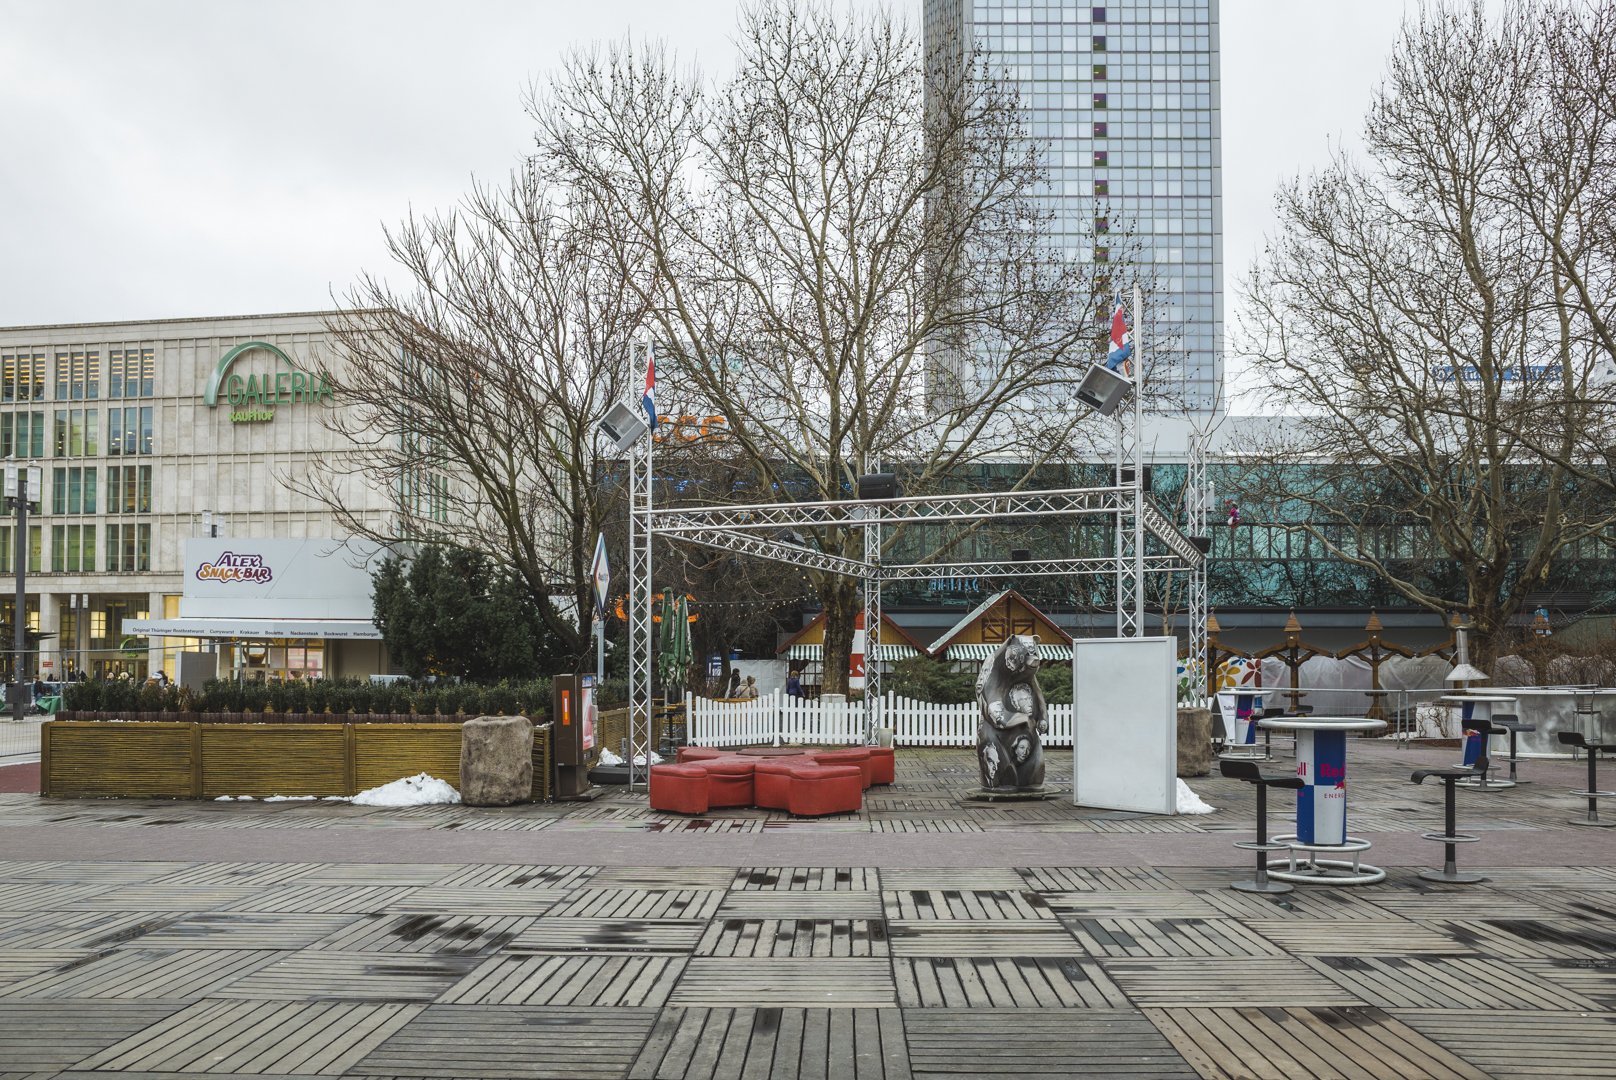 The stage is empty, 2015